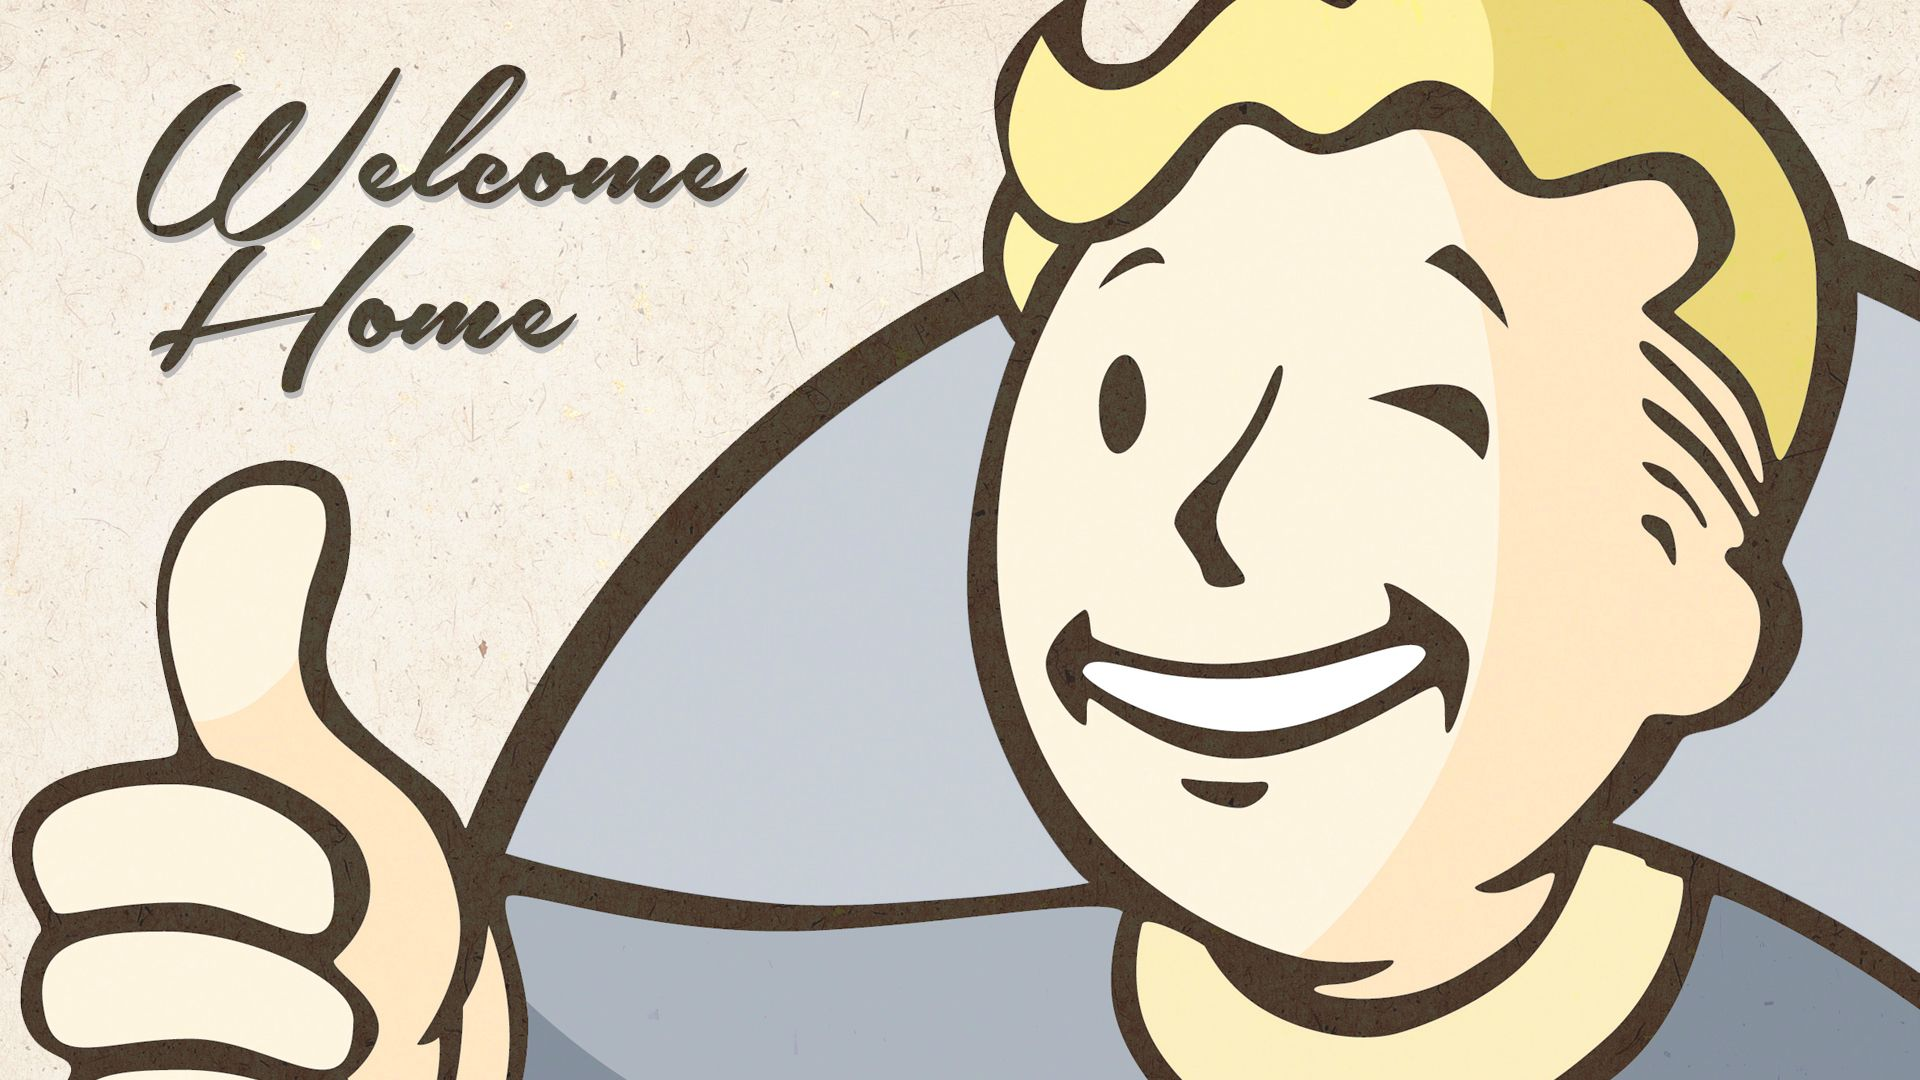 Fallout Clipart 1920x1080.